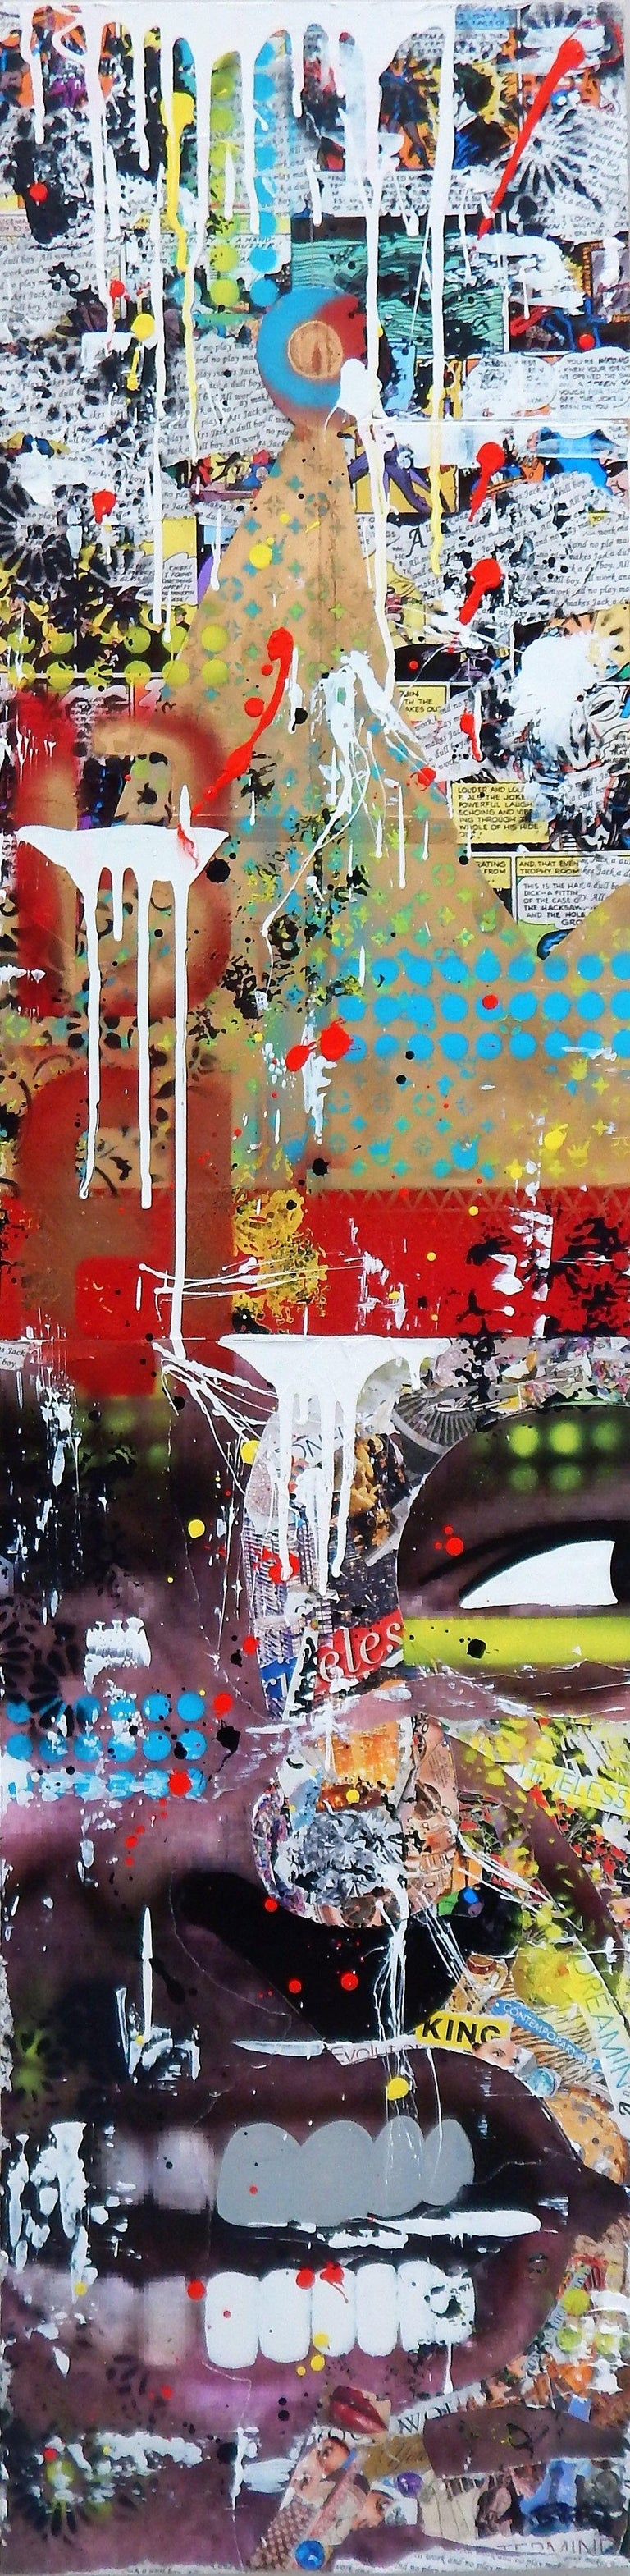 All Work No Play, Mixed Media on Wood Panel - Mixed Media Art by Greg Beebe